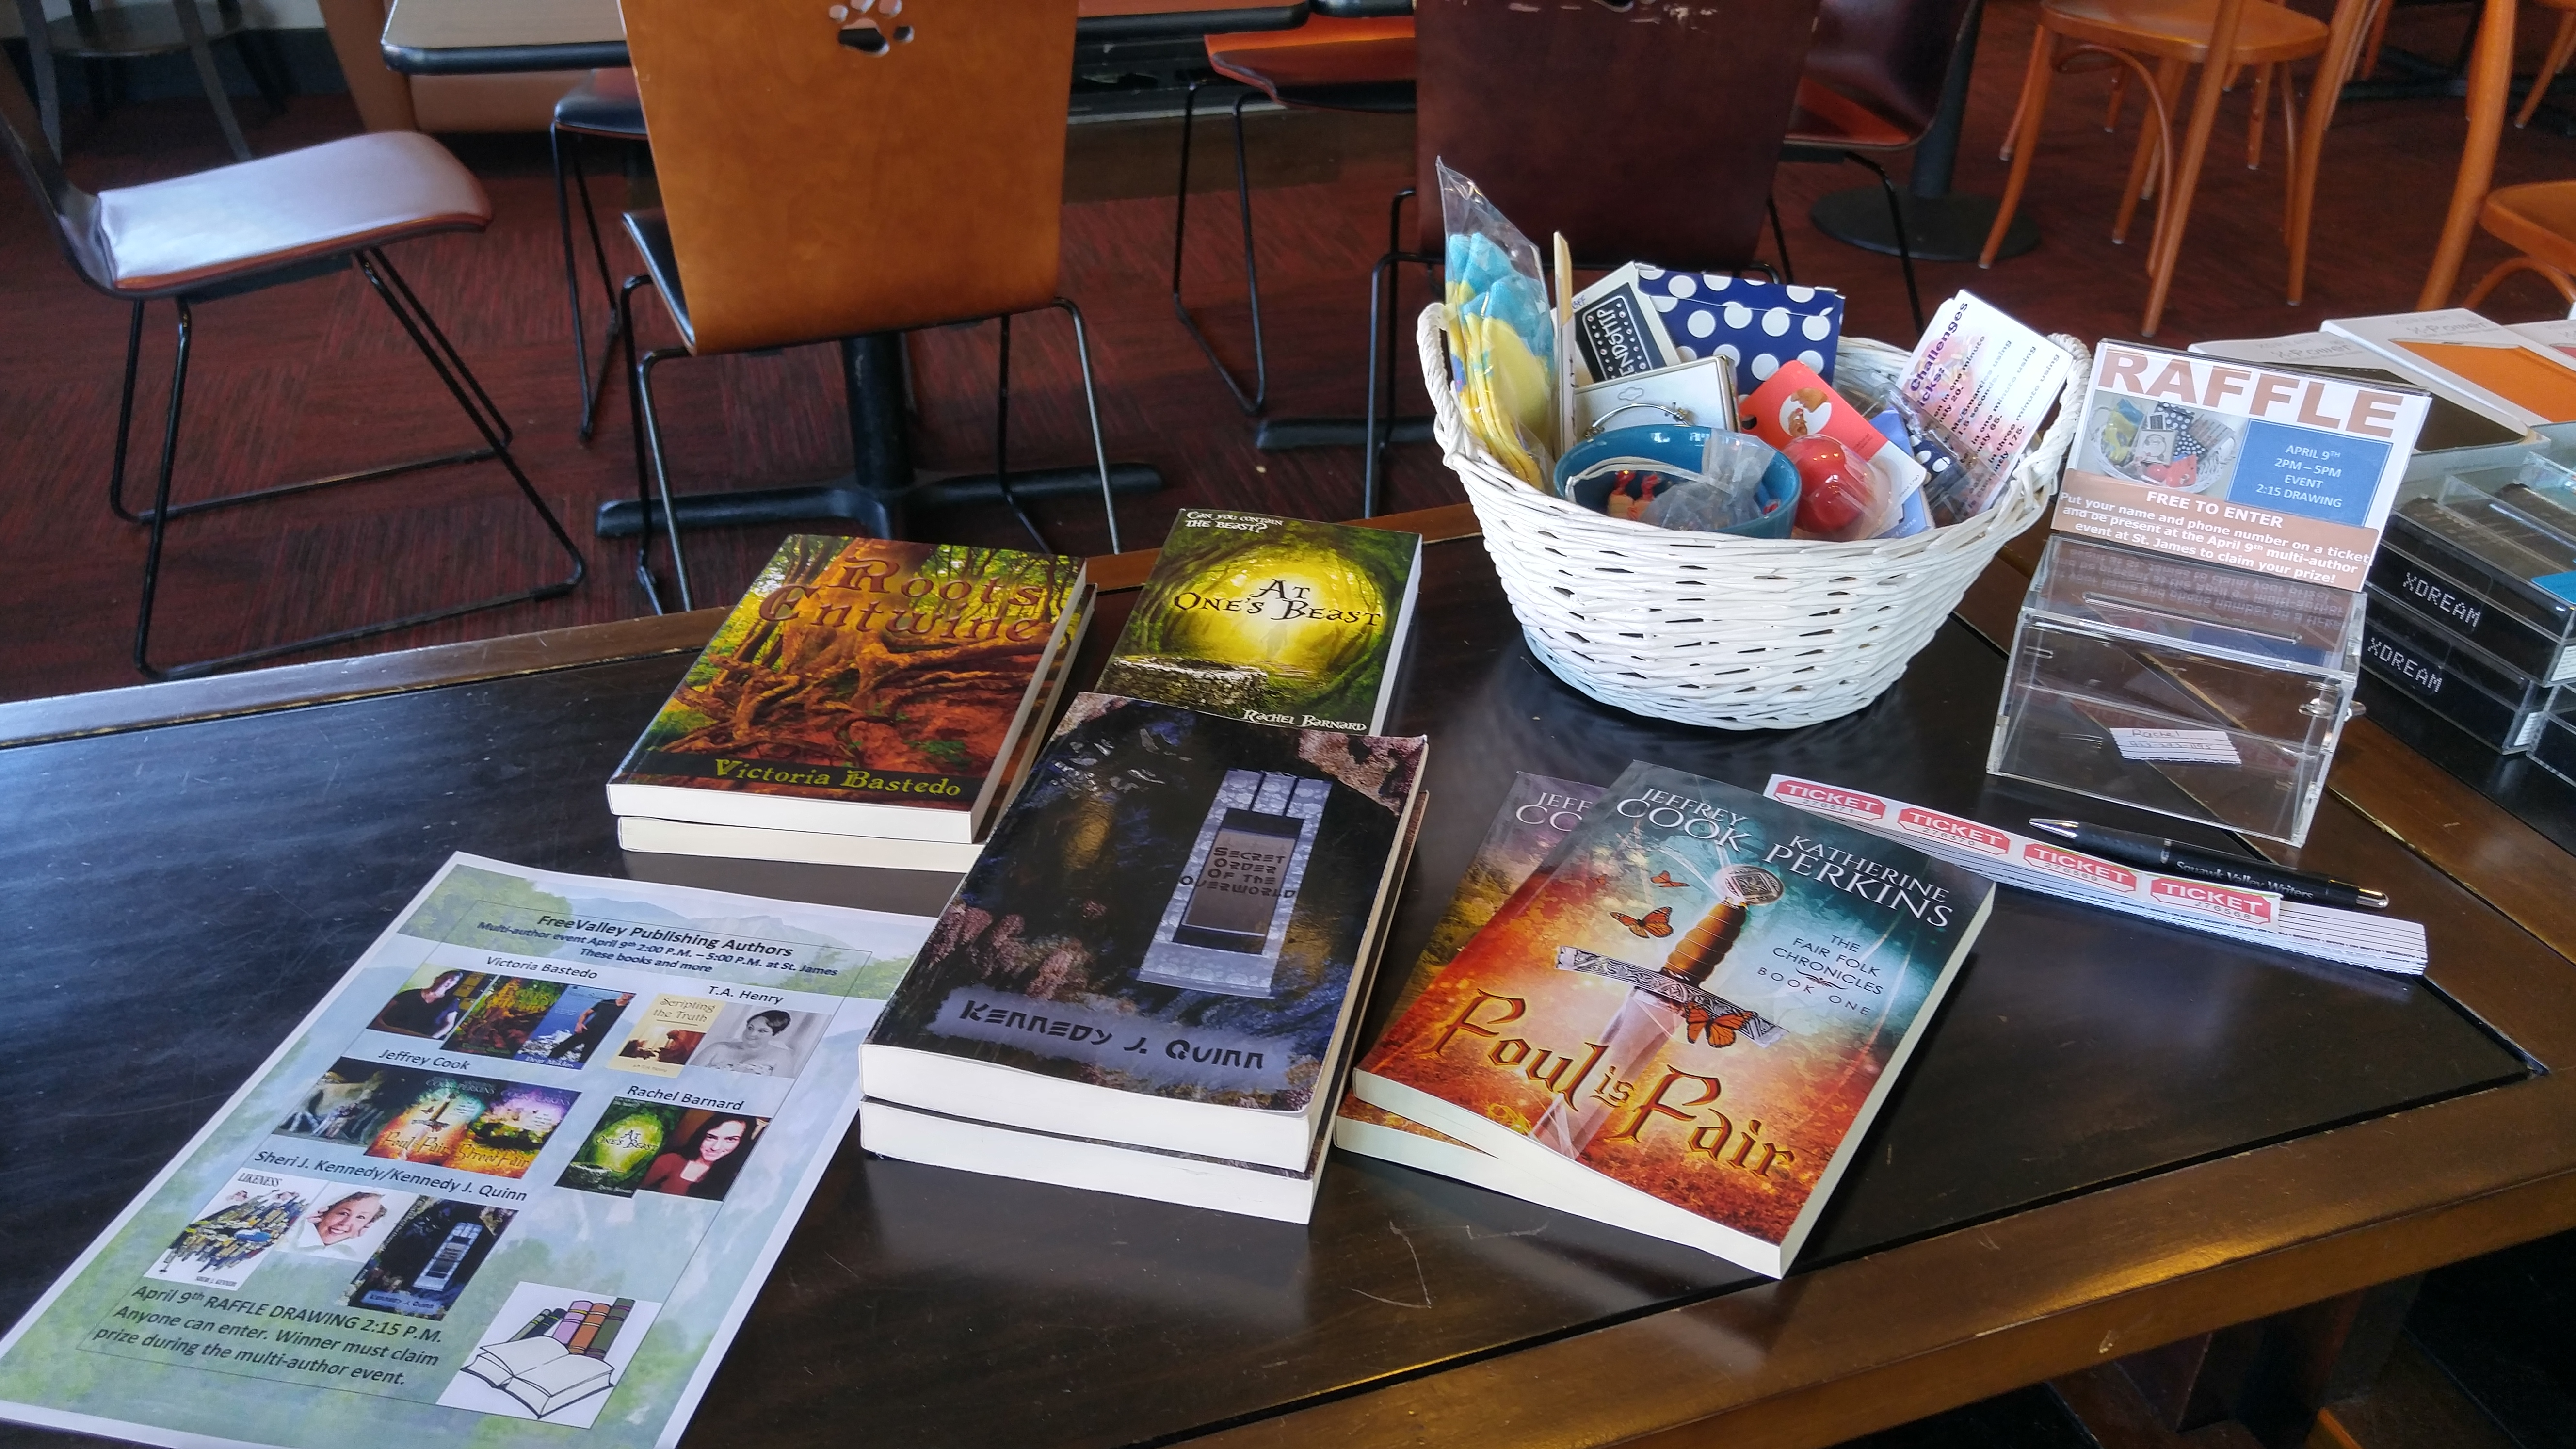 Local Event This Saturday €� St James Espresso In Kirkland, Wa With  Multiple Fvp Authors!